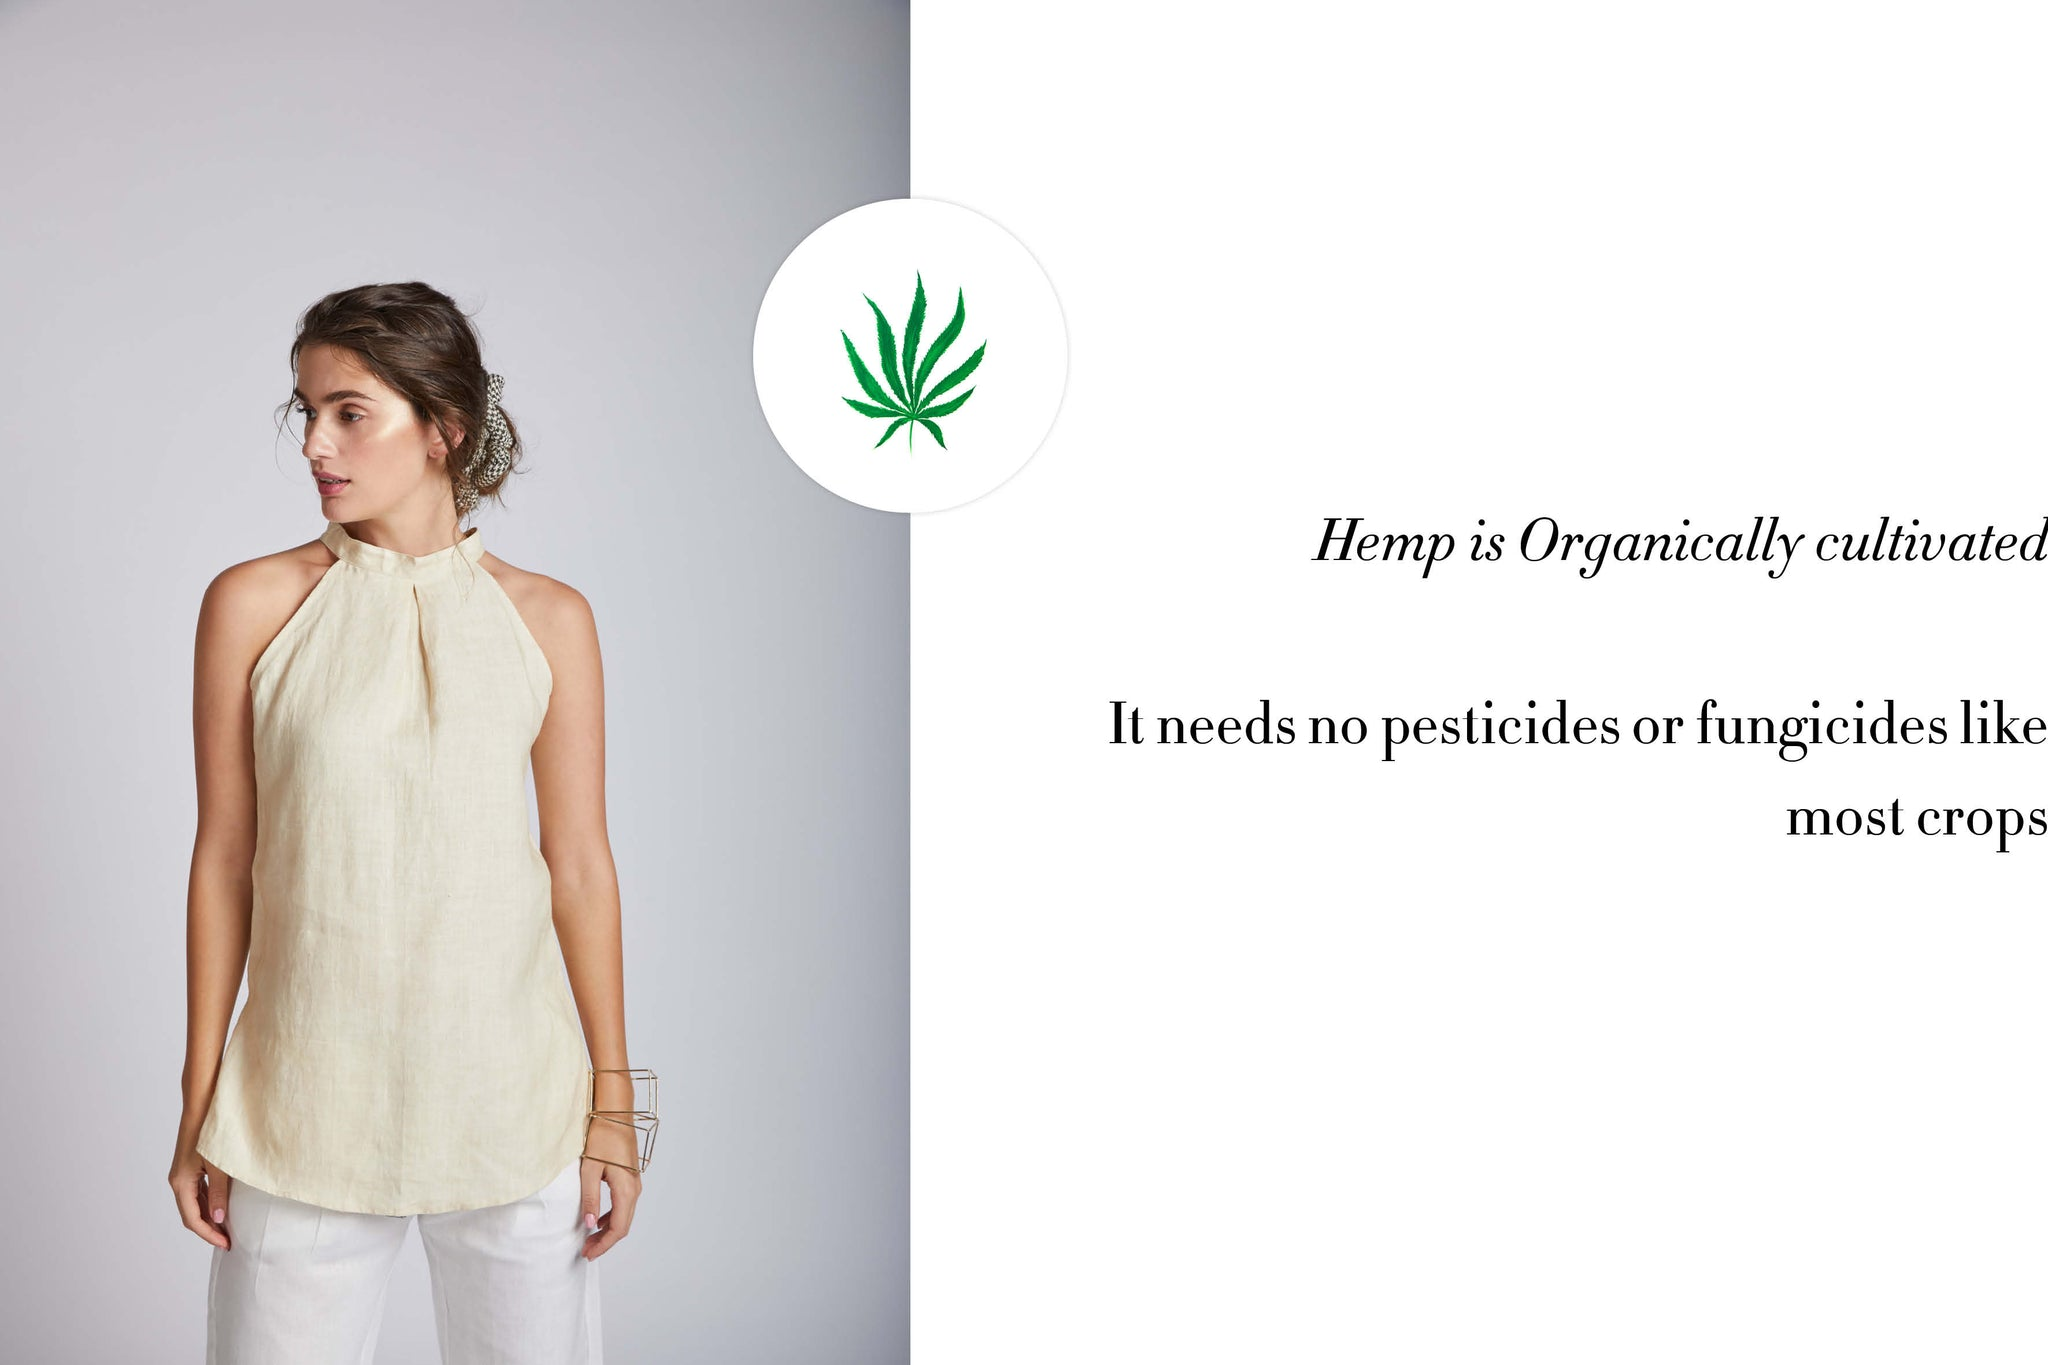 Hemp is organically cultivated . It needs no pesticides or fungicides like most crops